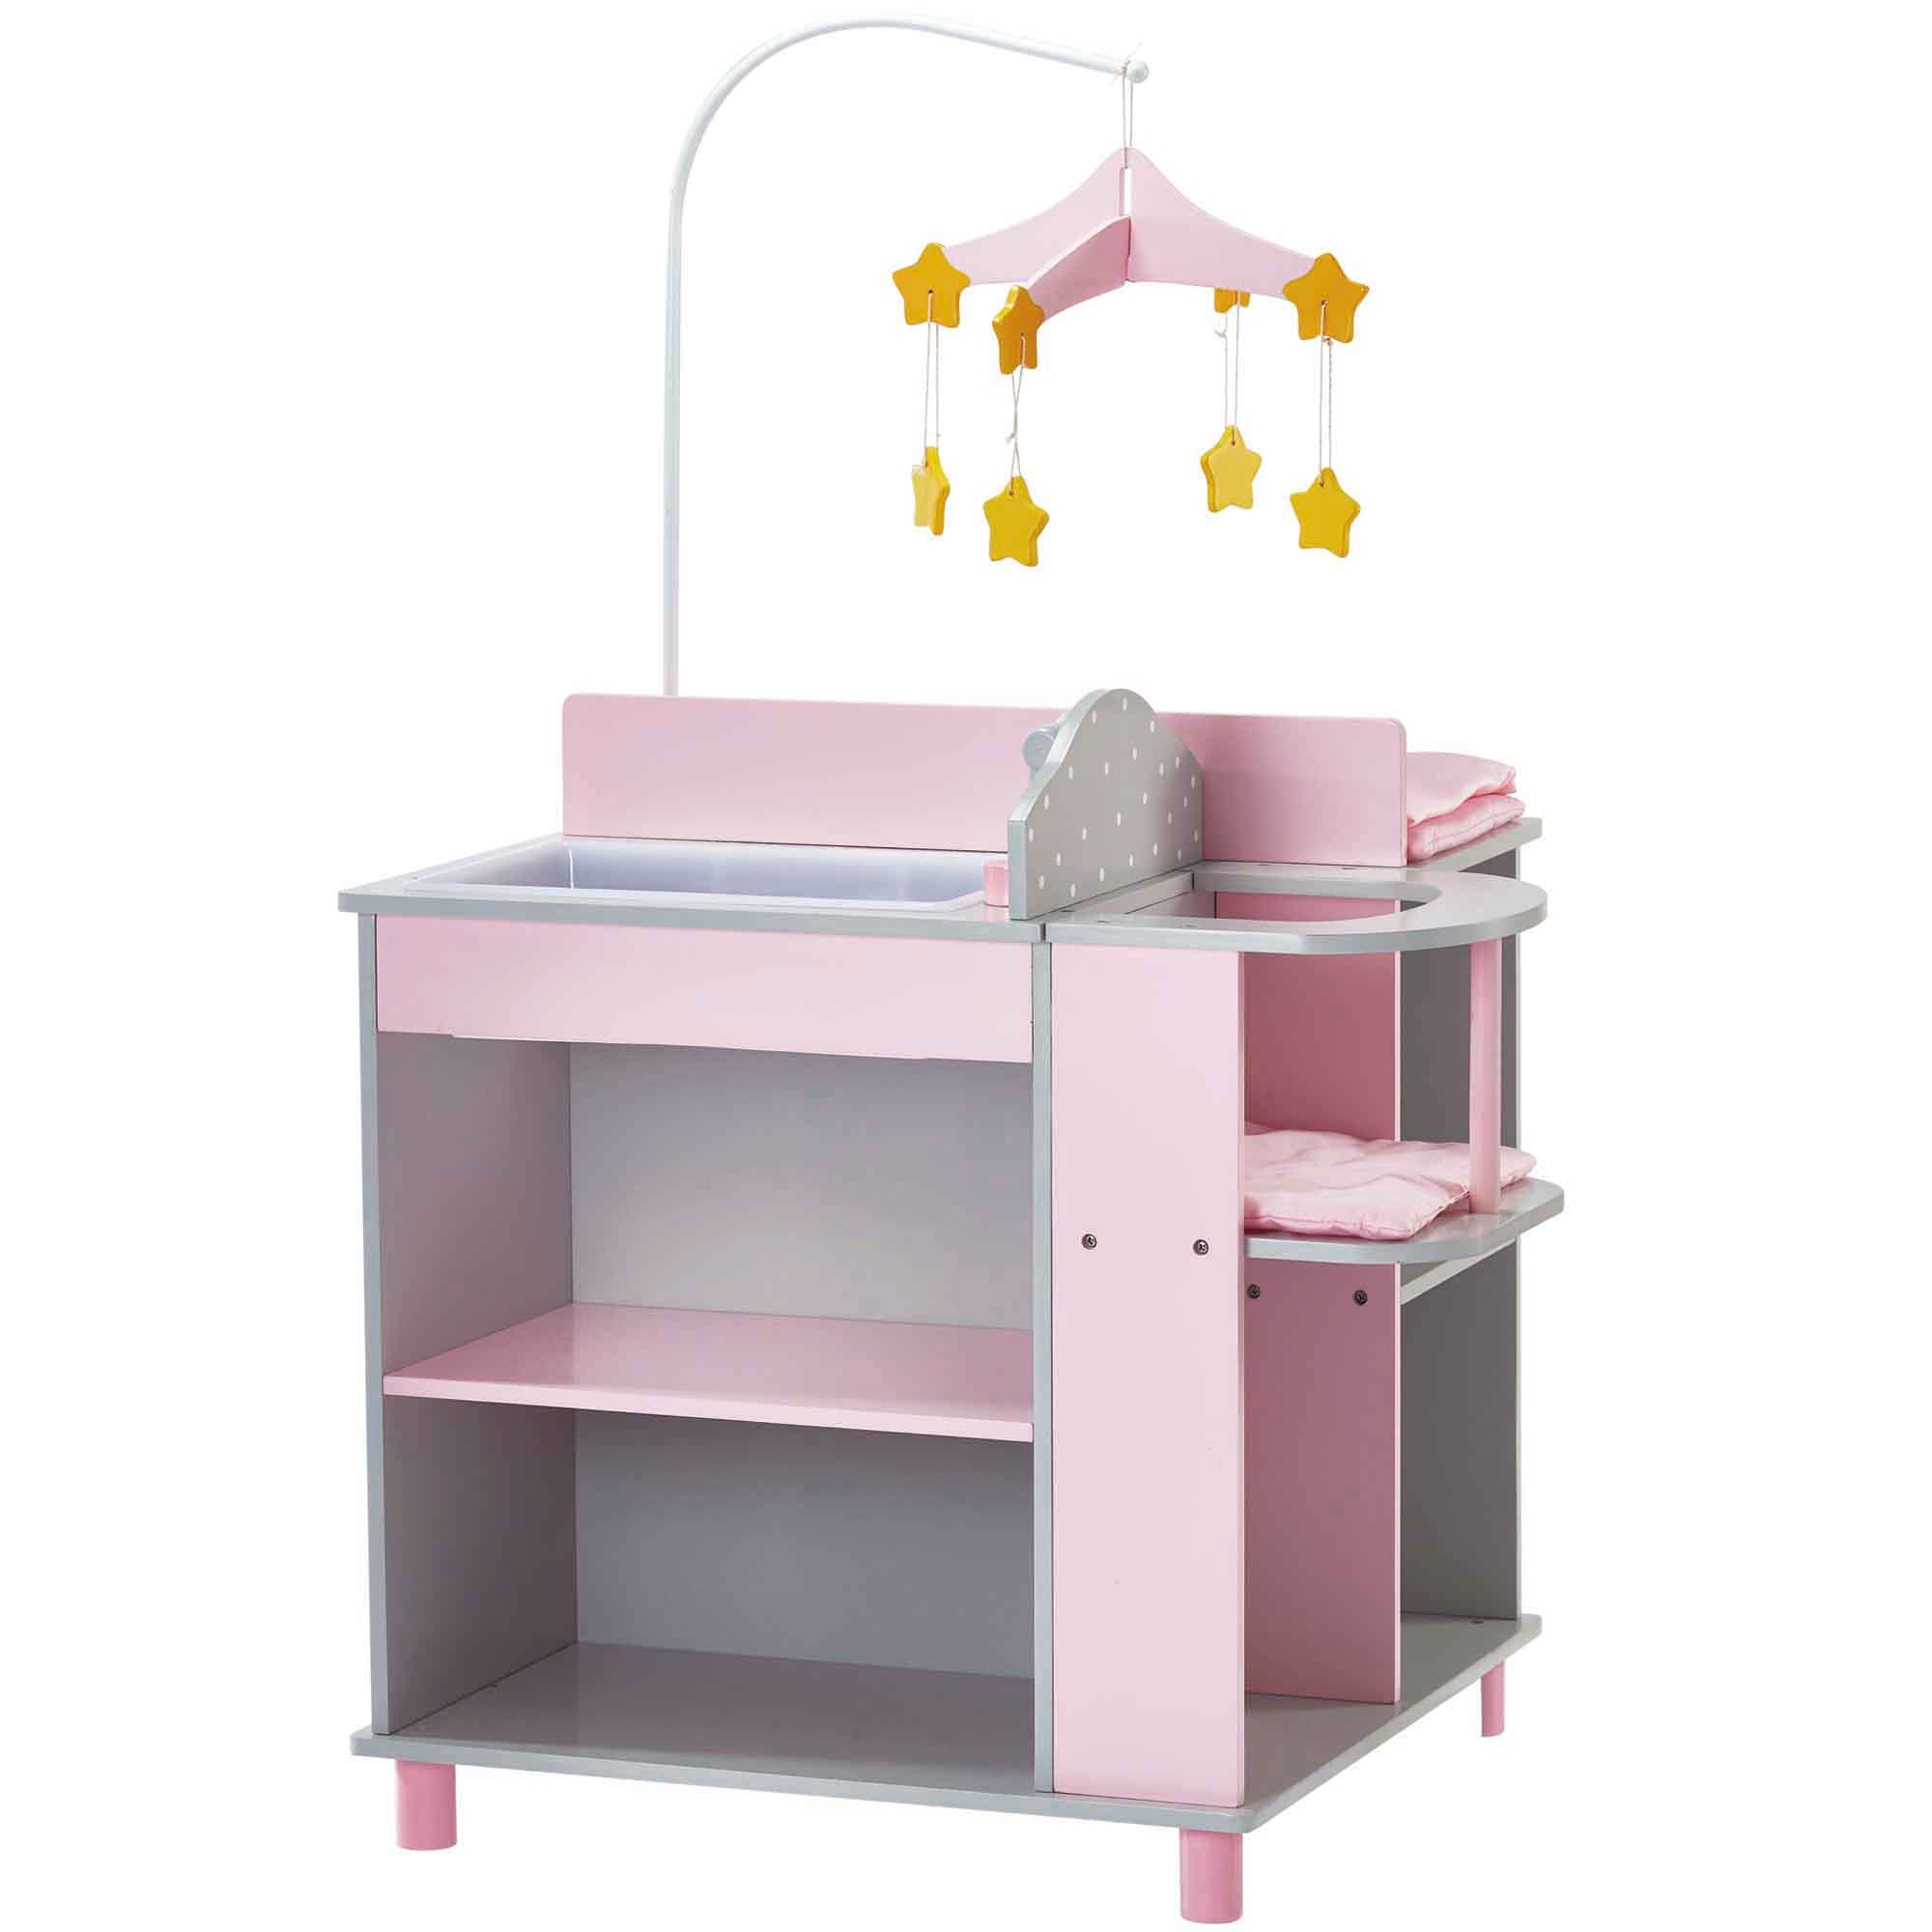 Olivia's little world ~ Polka Dot Princess 45cm Doll Furniture ~ Baby changing station with storage 3+